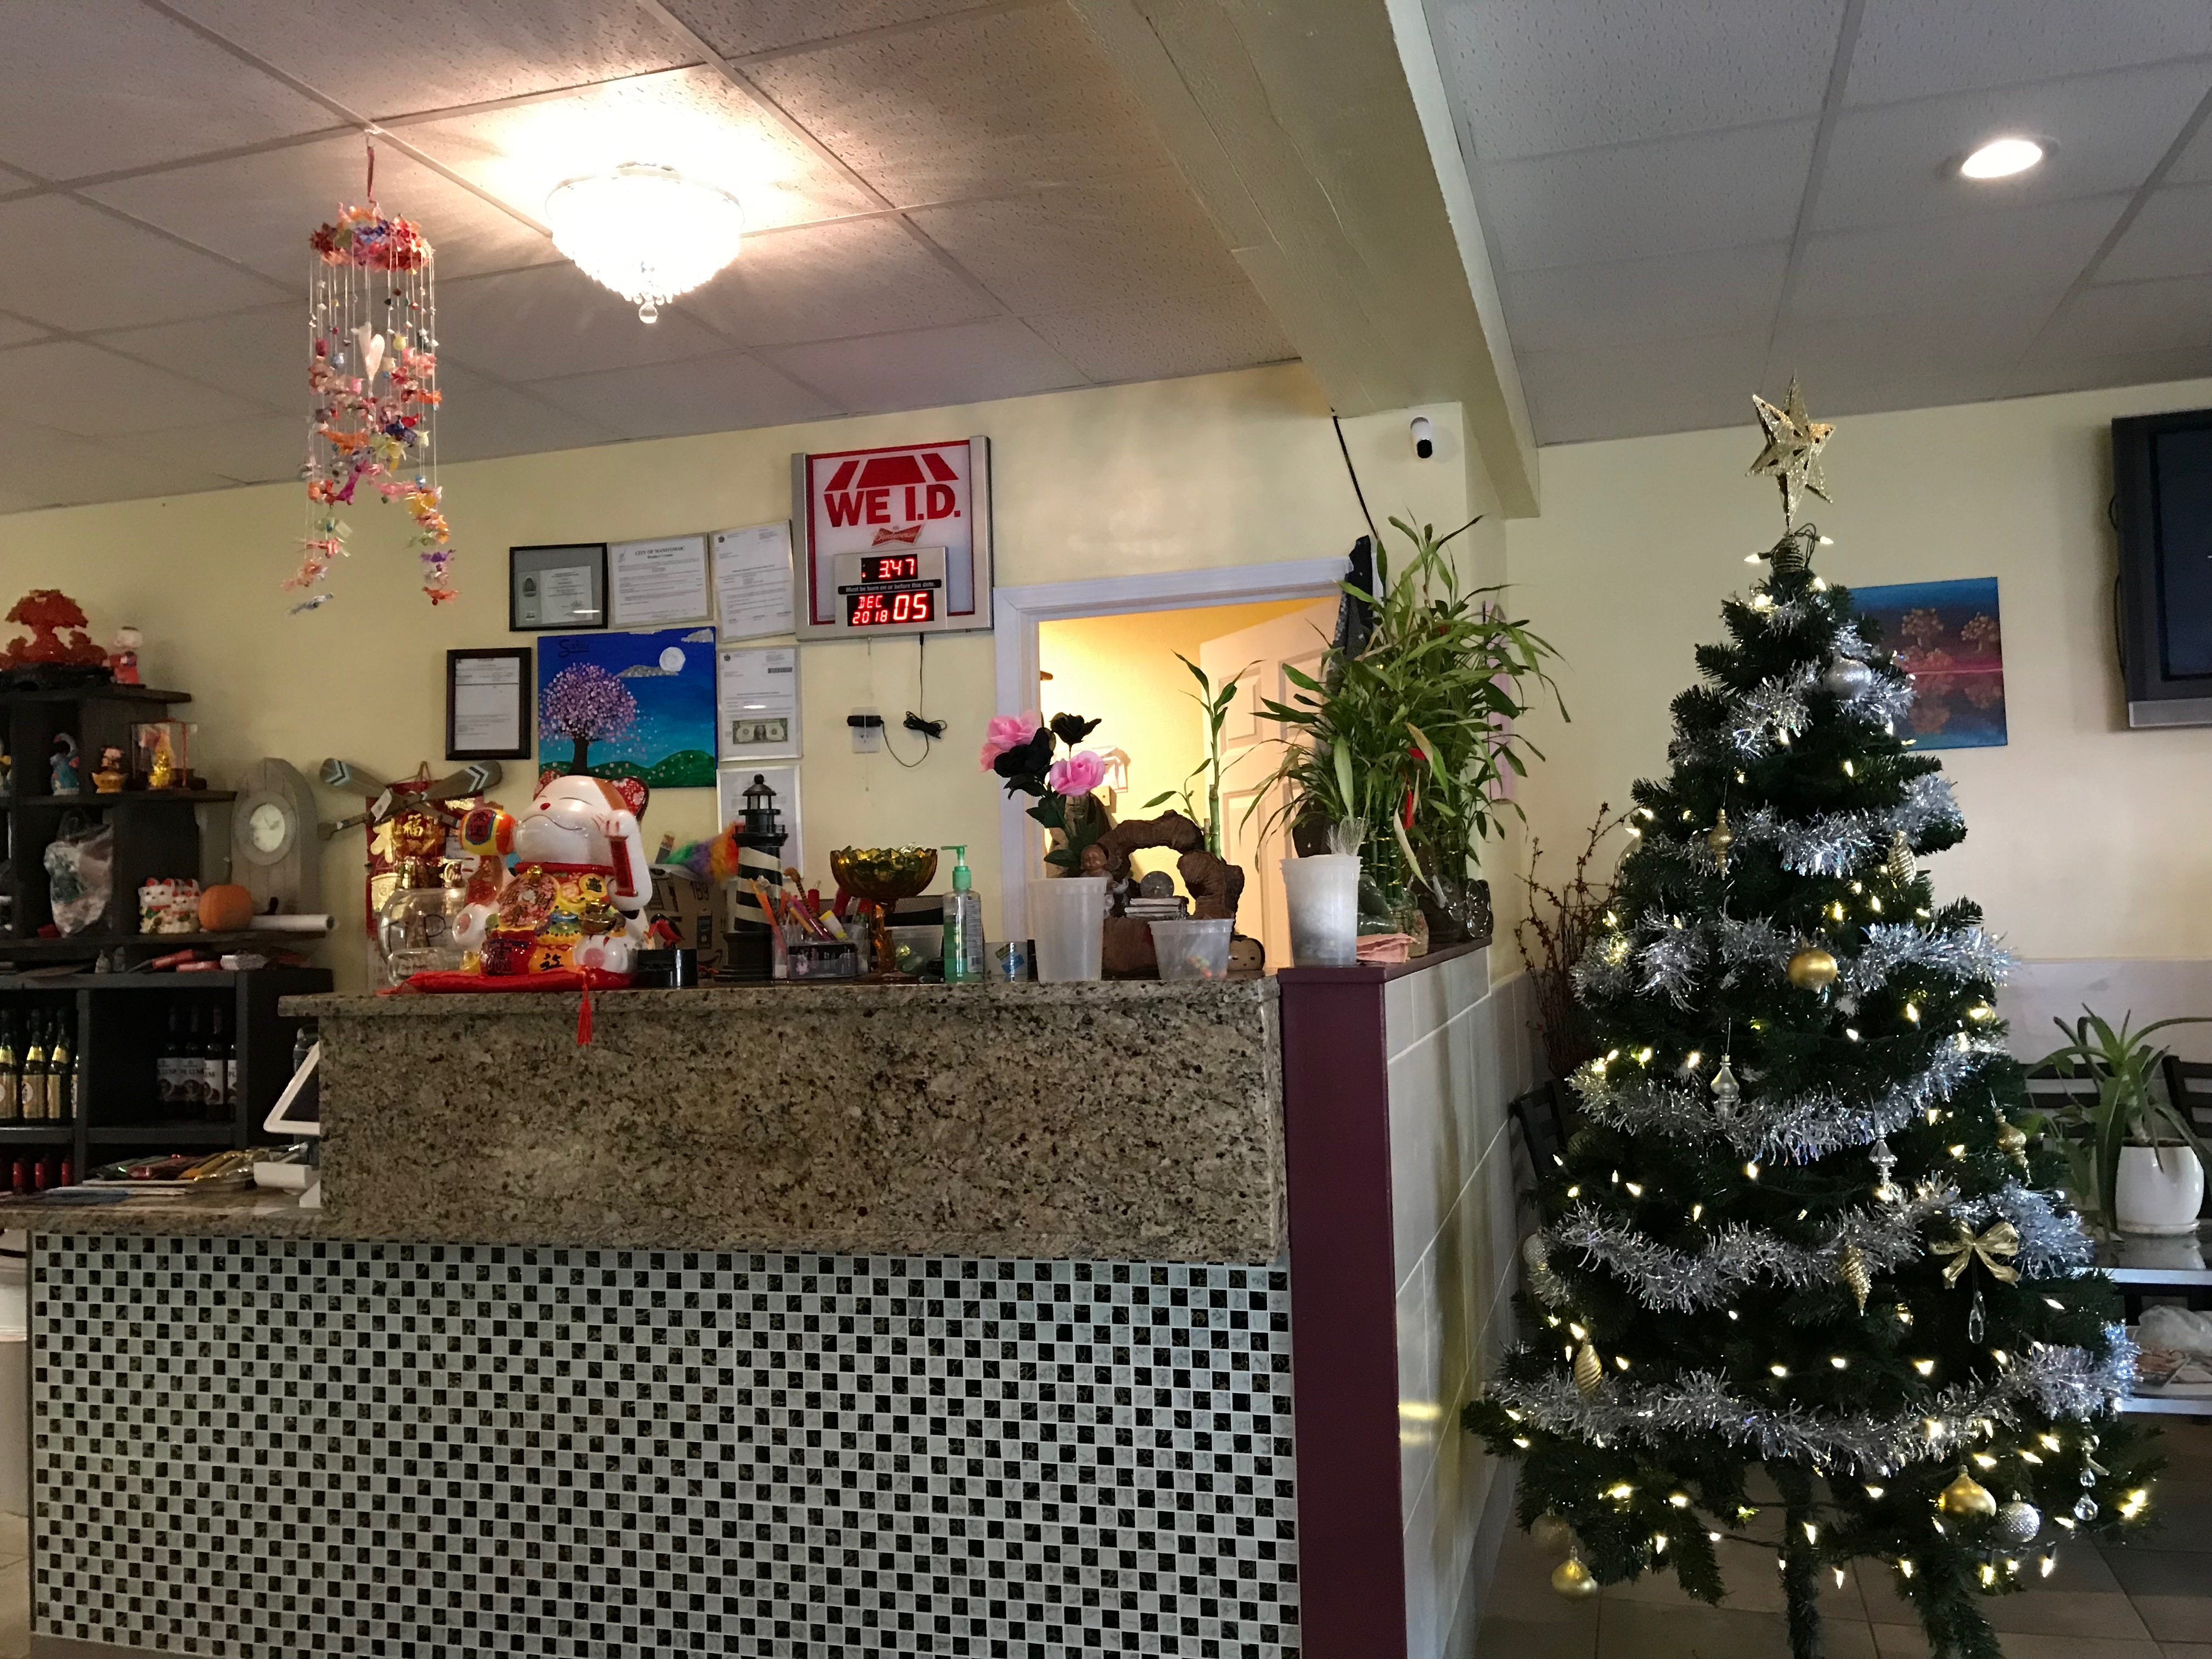 The front desk is decorated for Christmas at Sakura Sushi & Thai.